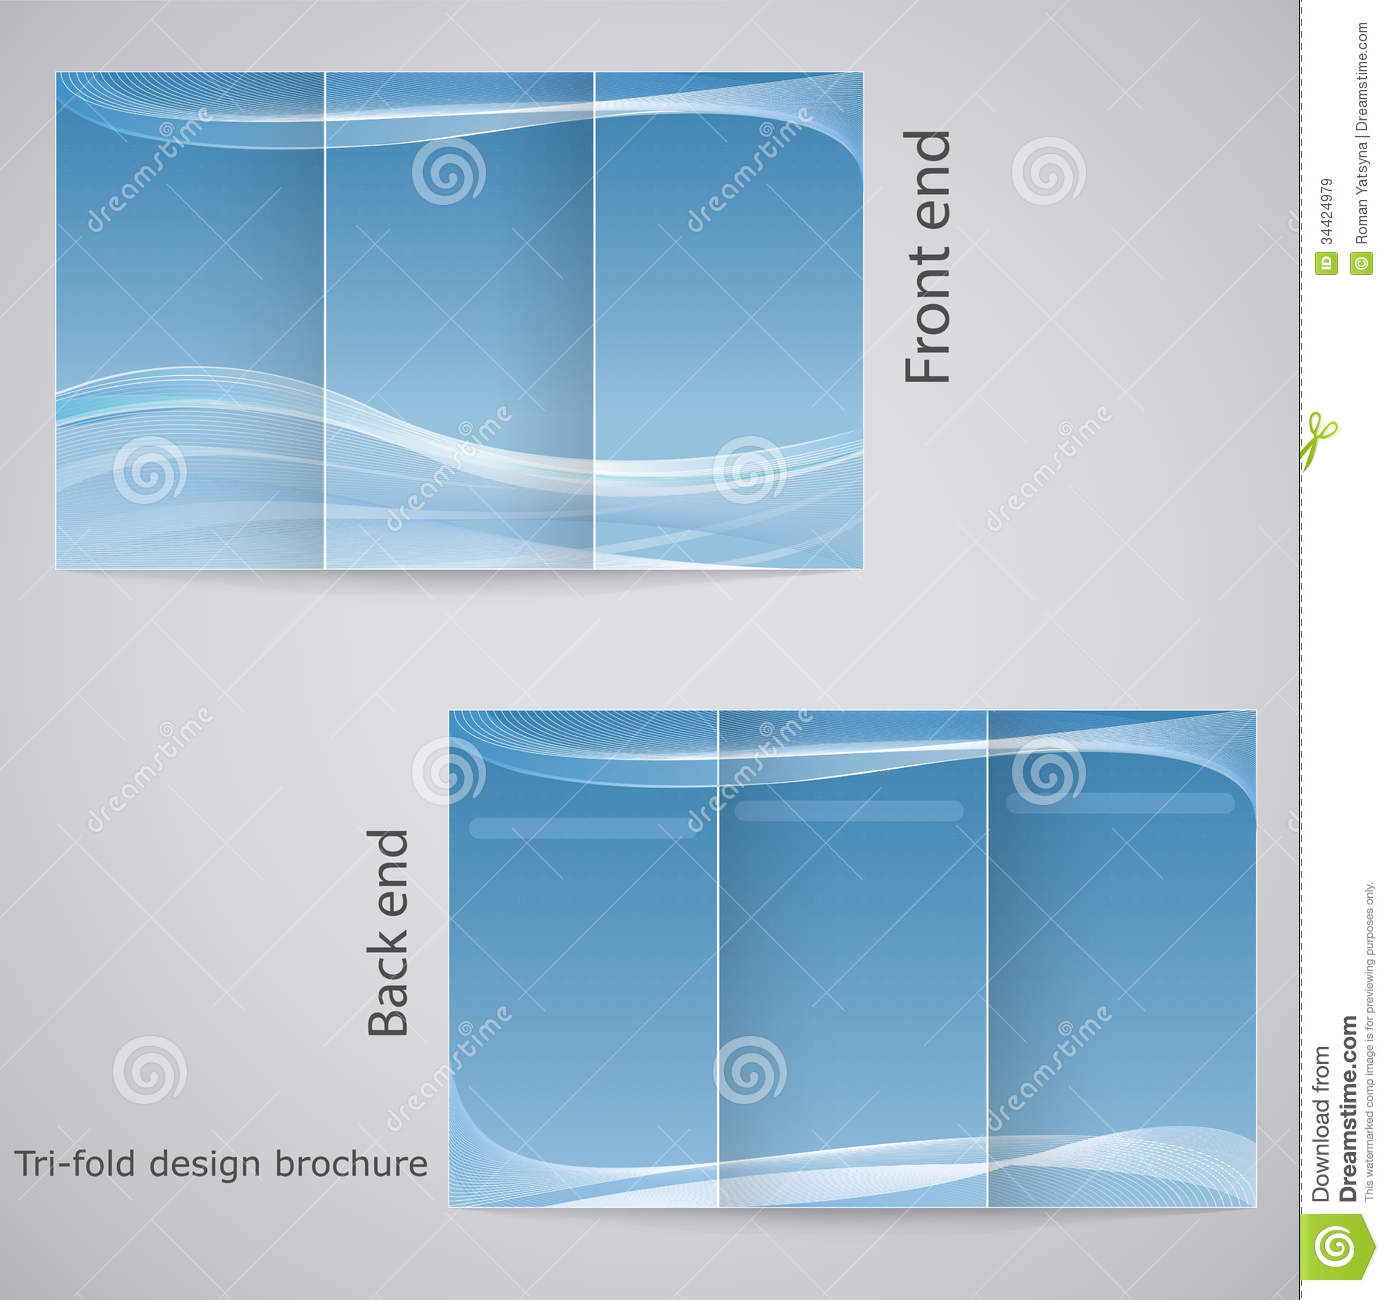 17 tri fold brochure design templates images tri fold for Templates for tri fold brochures